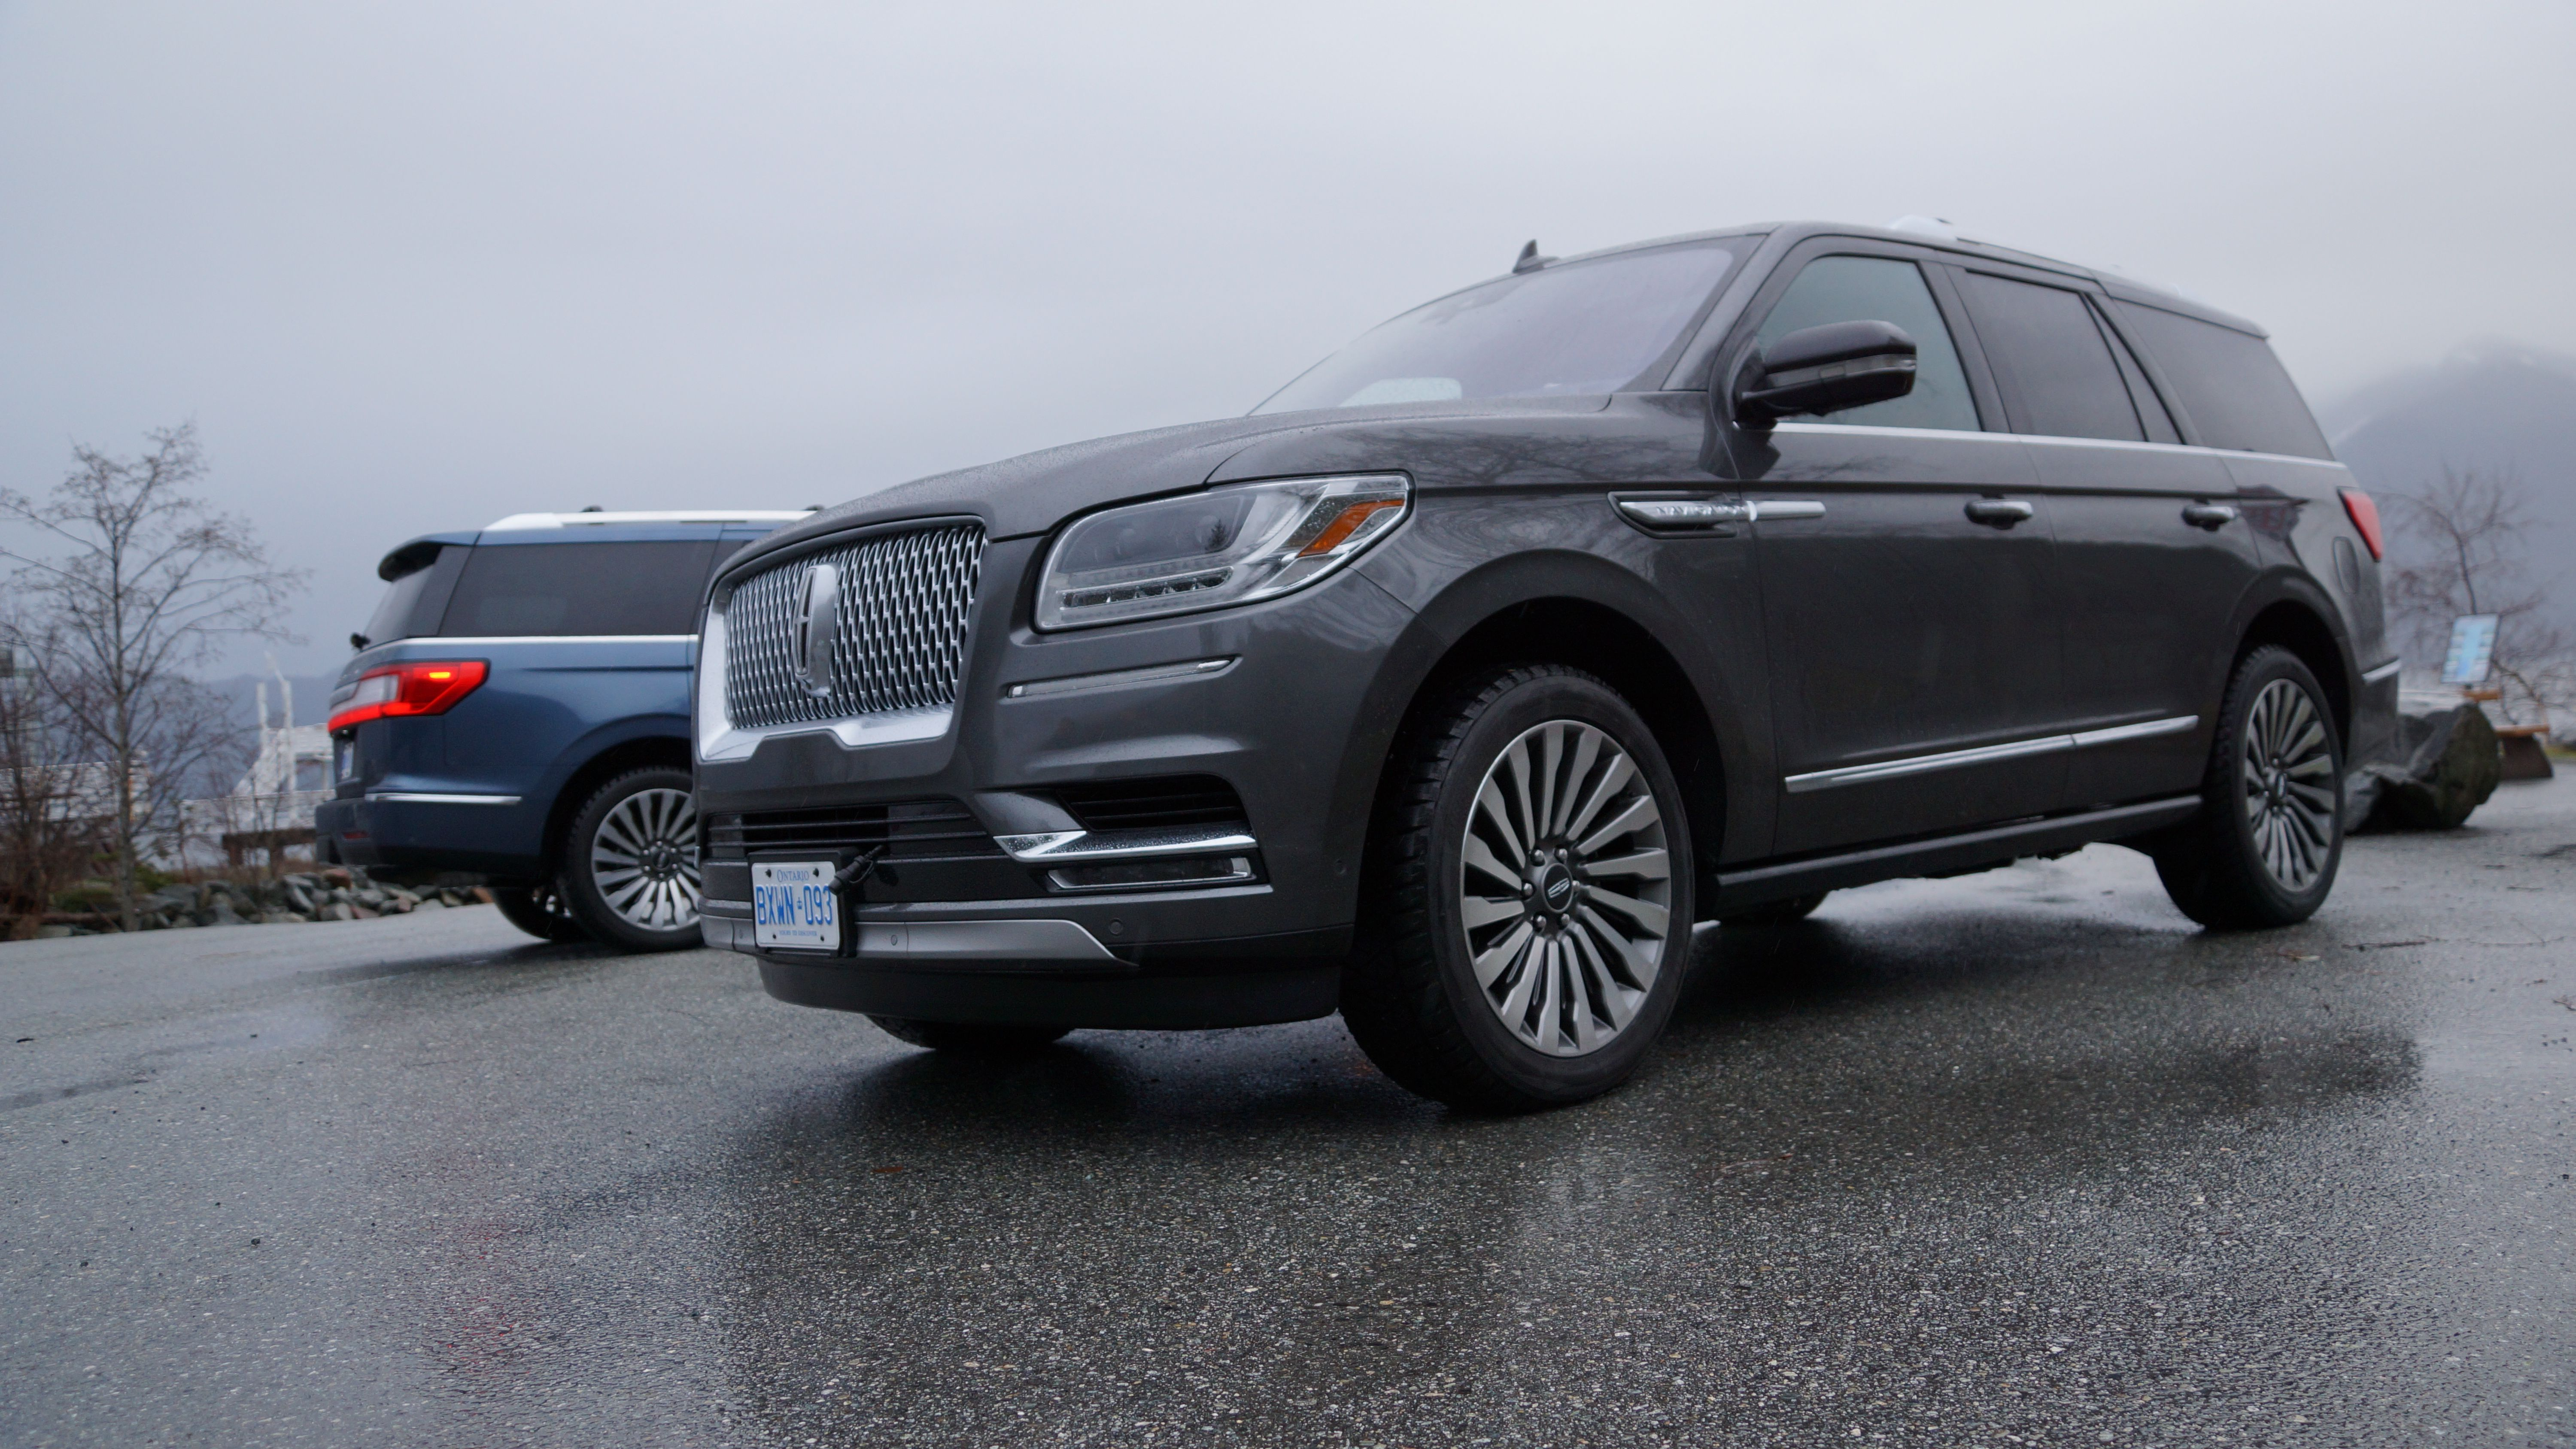 Rolls Royce Motor Cars Releases Wraith Eagle Viii Sketches Luxury Cars Car In The World Lincoln Navigator